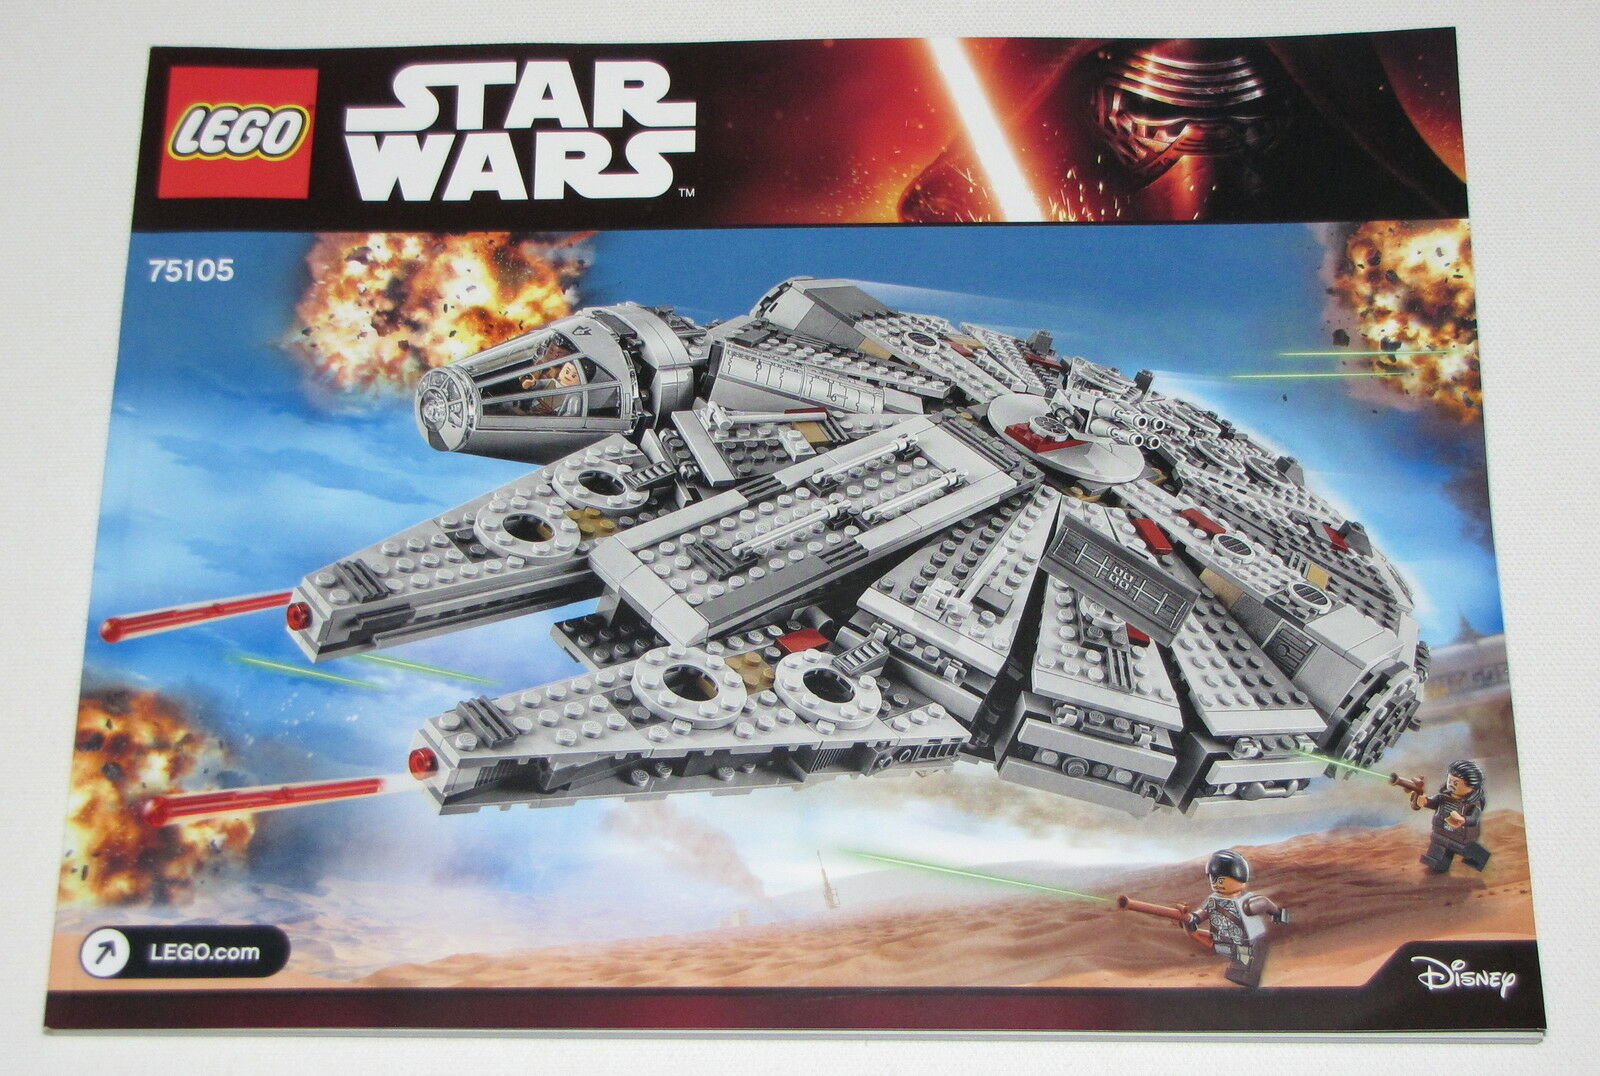 Lego New Instructions ONLY for Star Wars Set 75105 Millennium Falcon Booklet